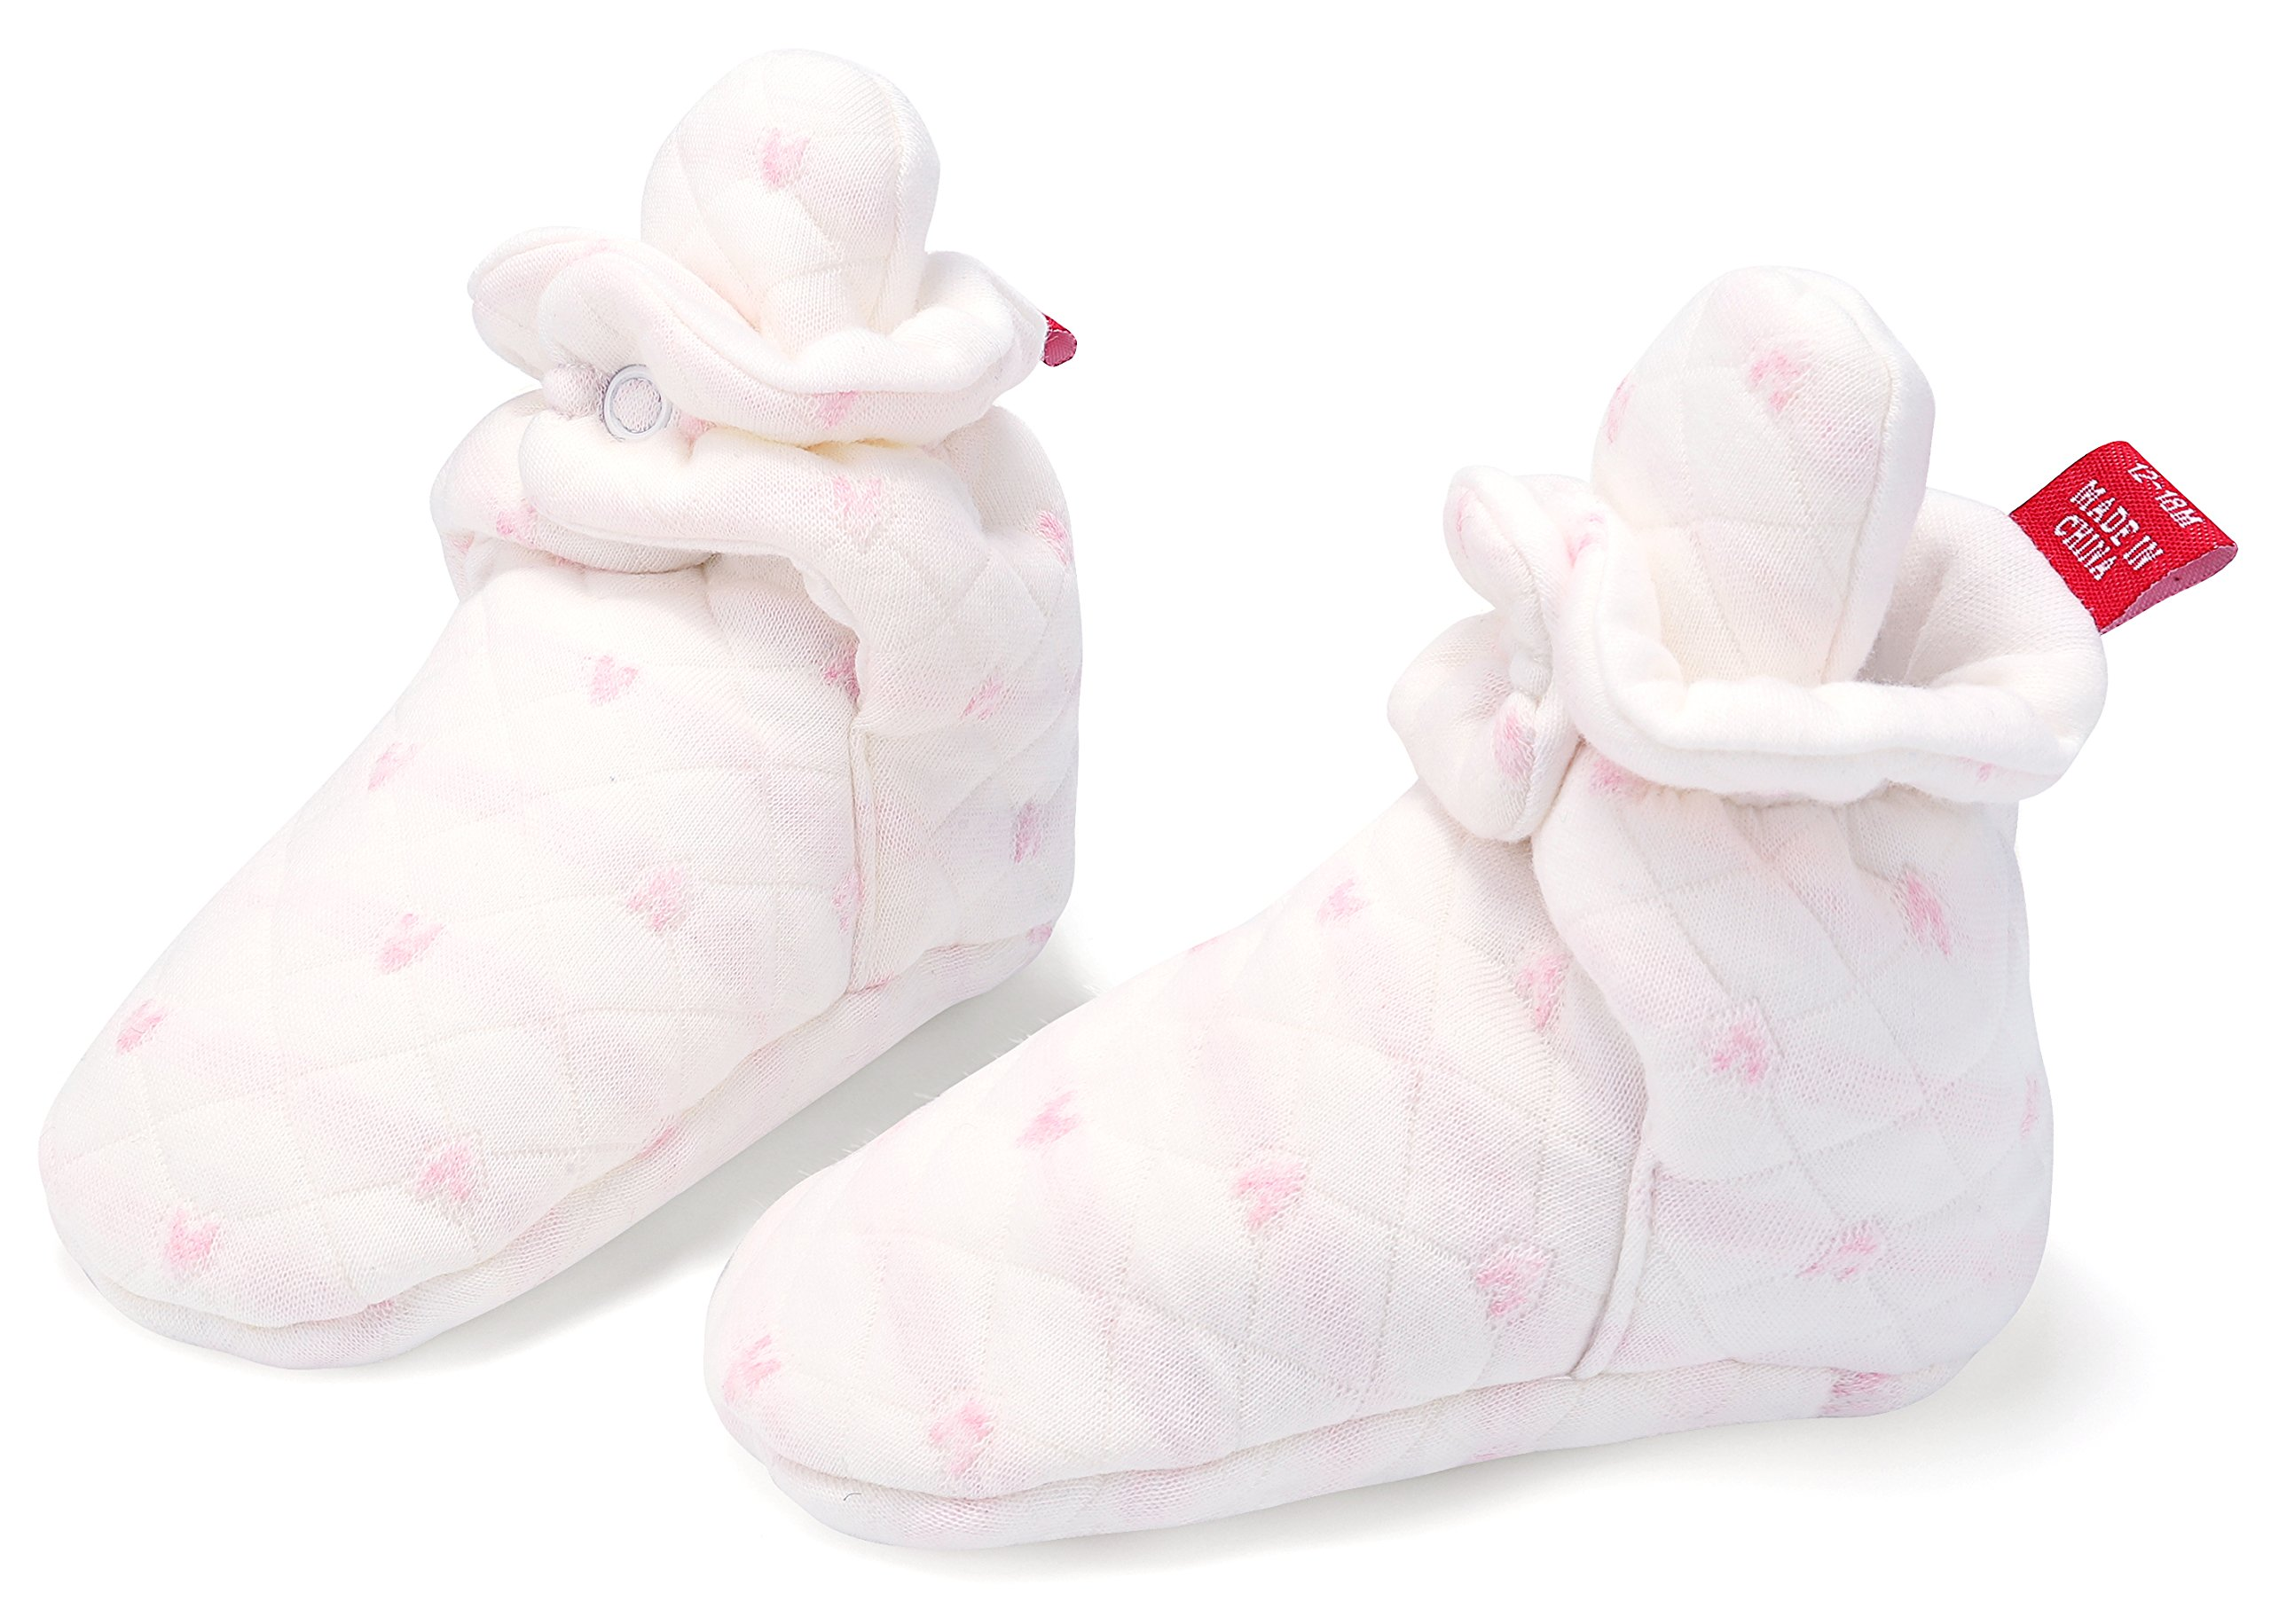 Booties Newborn Slippers For Baby Boys Girls 100% cotton (Heart Pink, 3-6M)